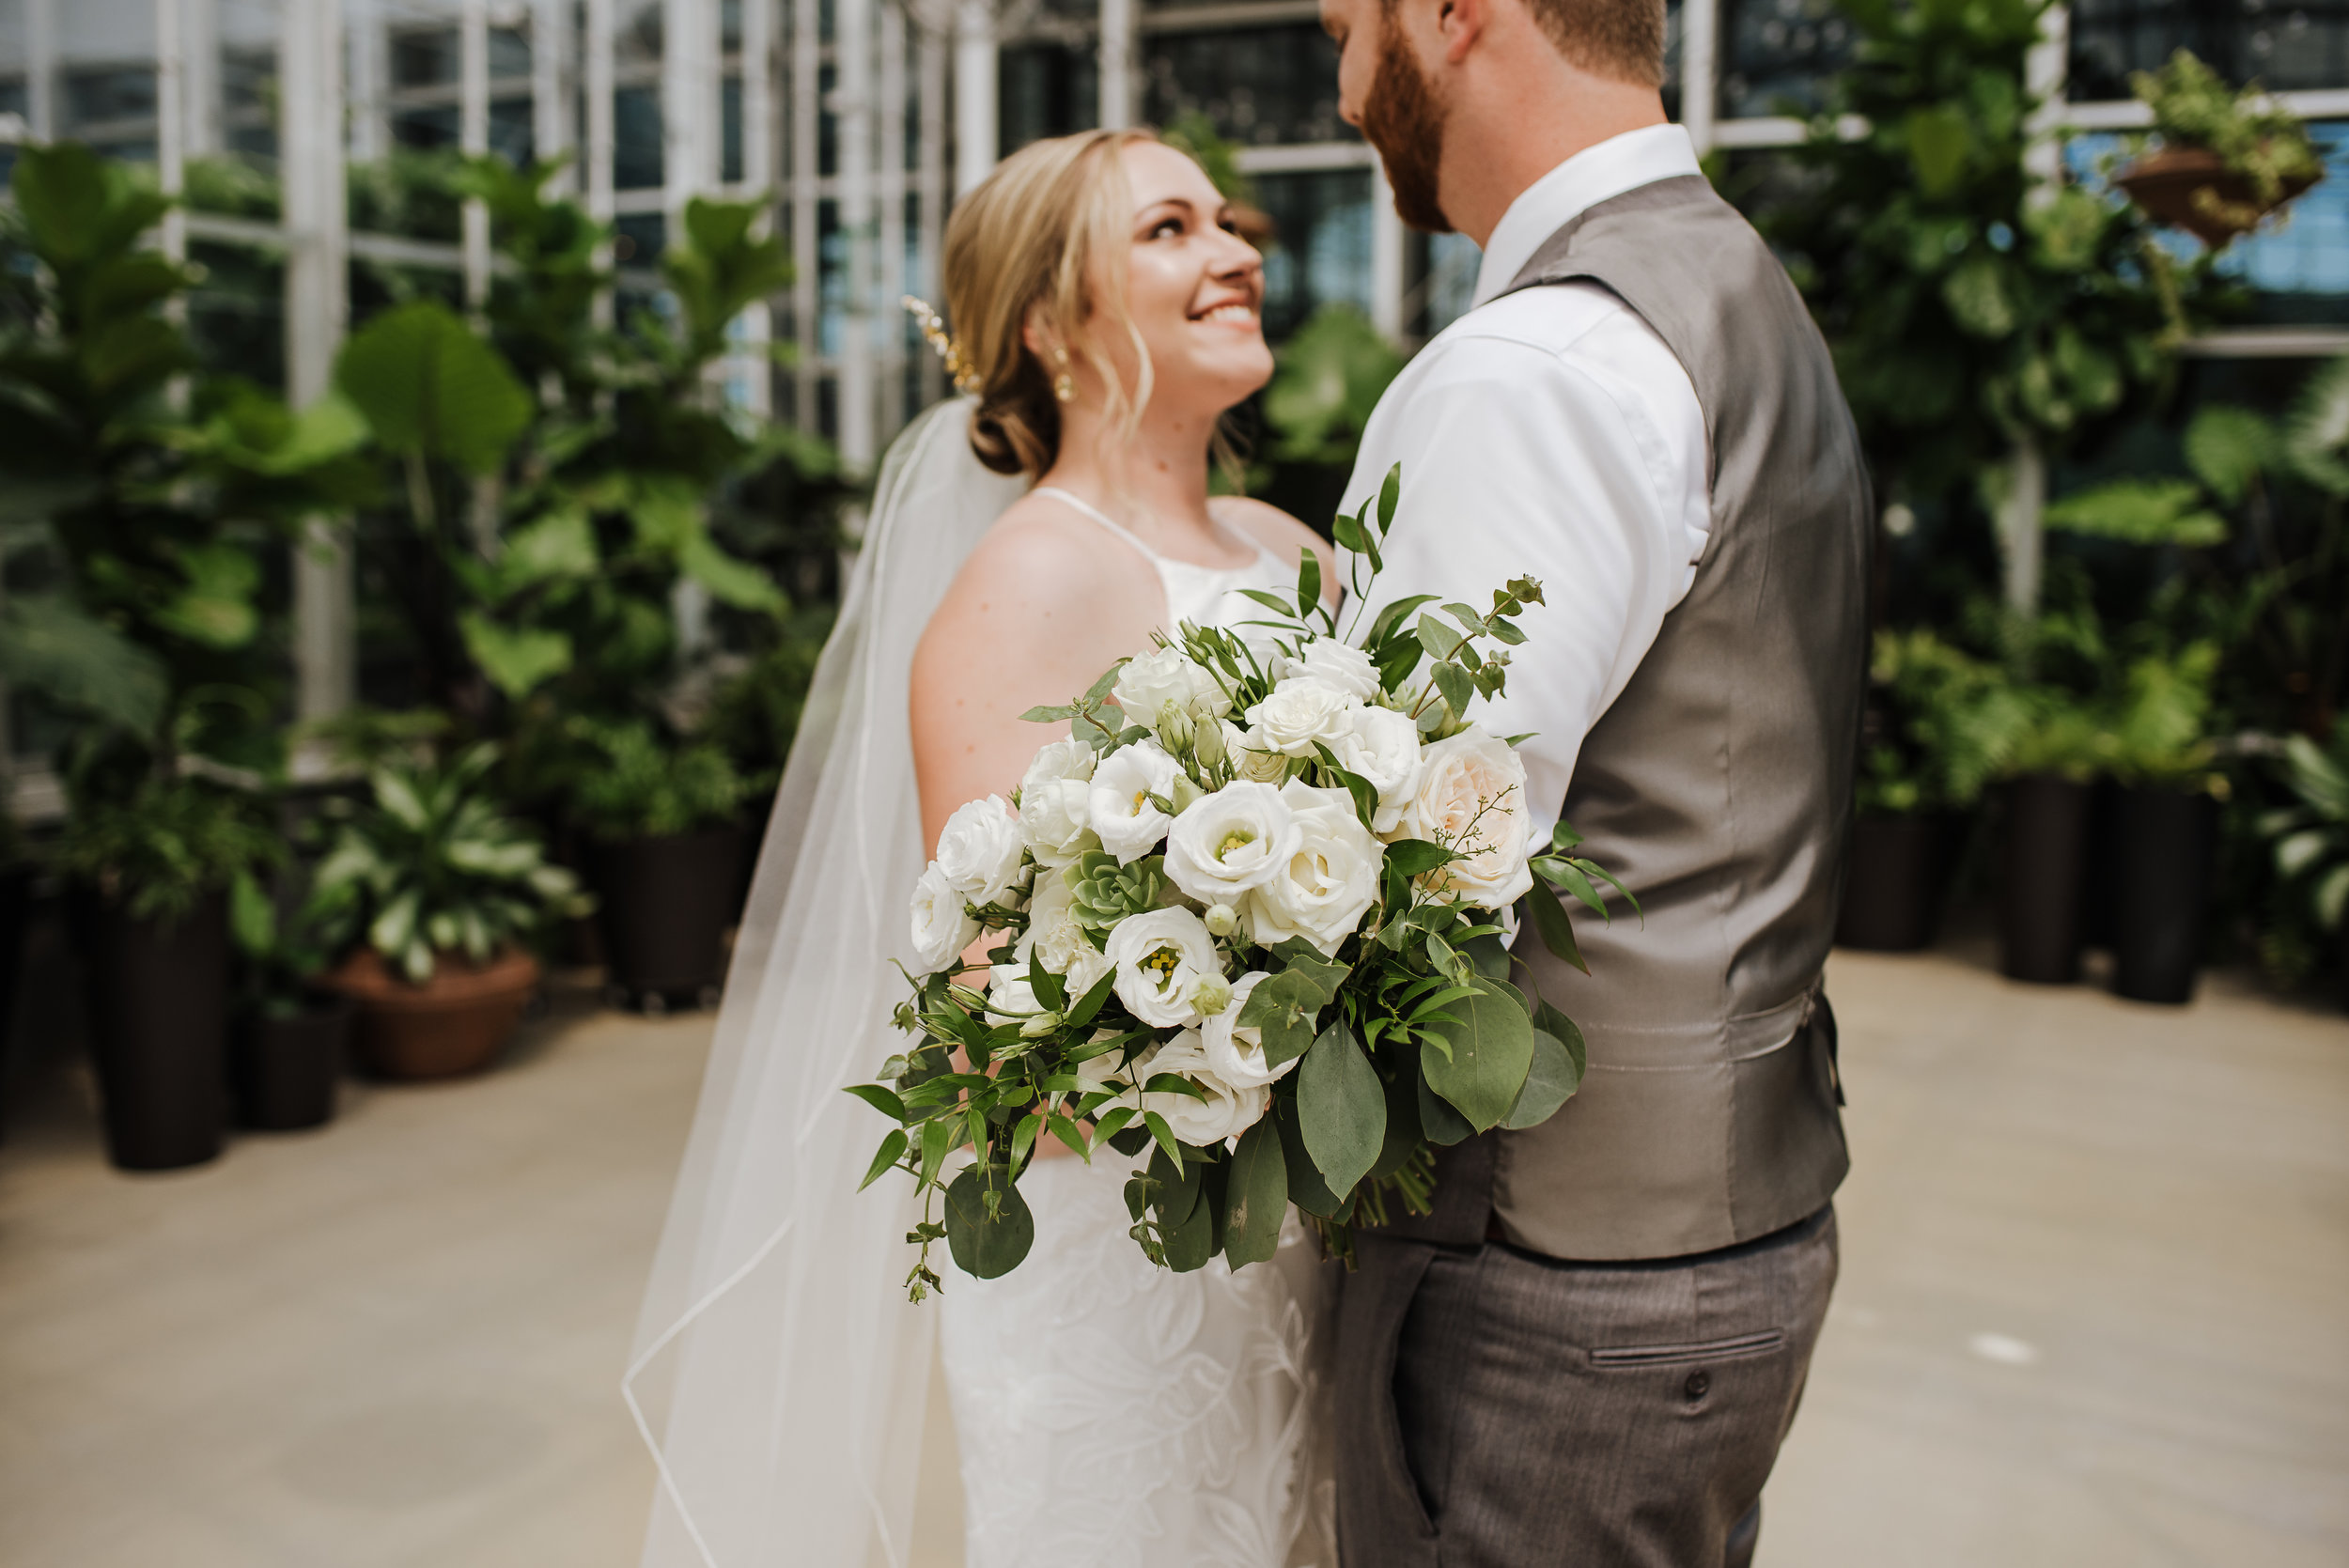 Downtown Market | Grand Rapids, Michigan Wedding Photographer | Greenhouse Wedding